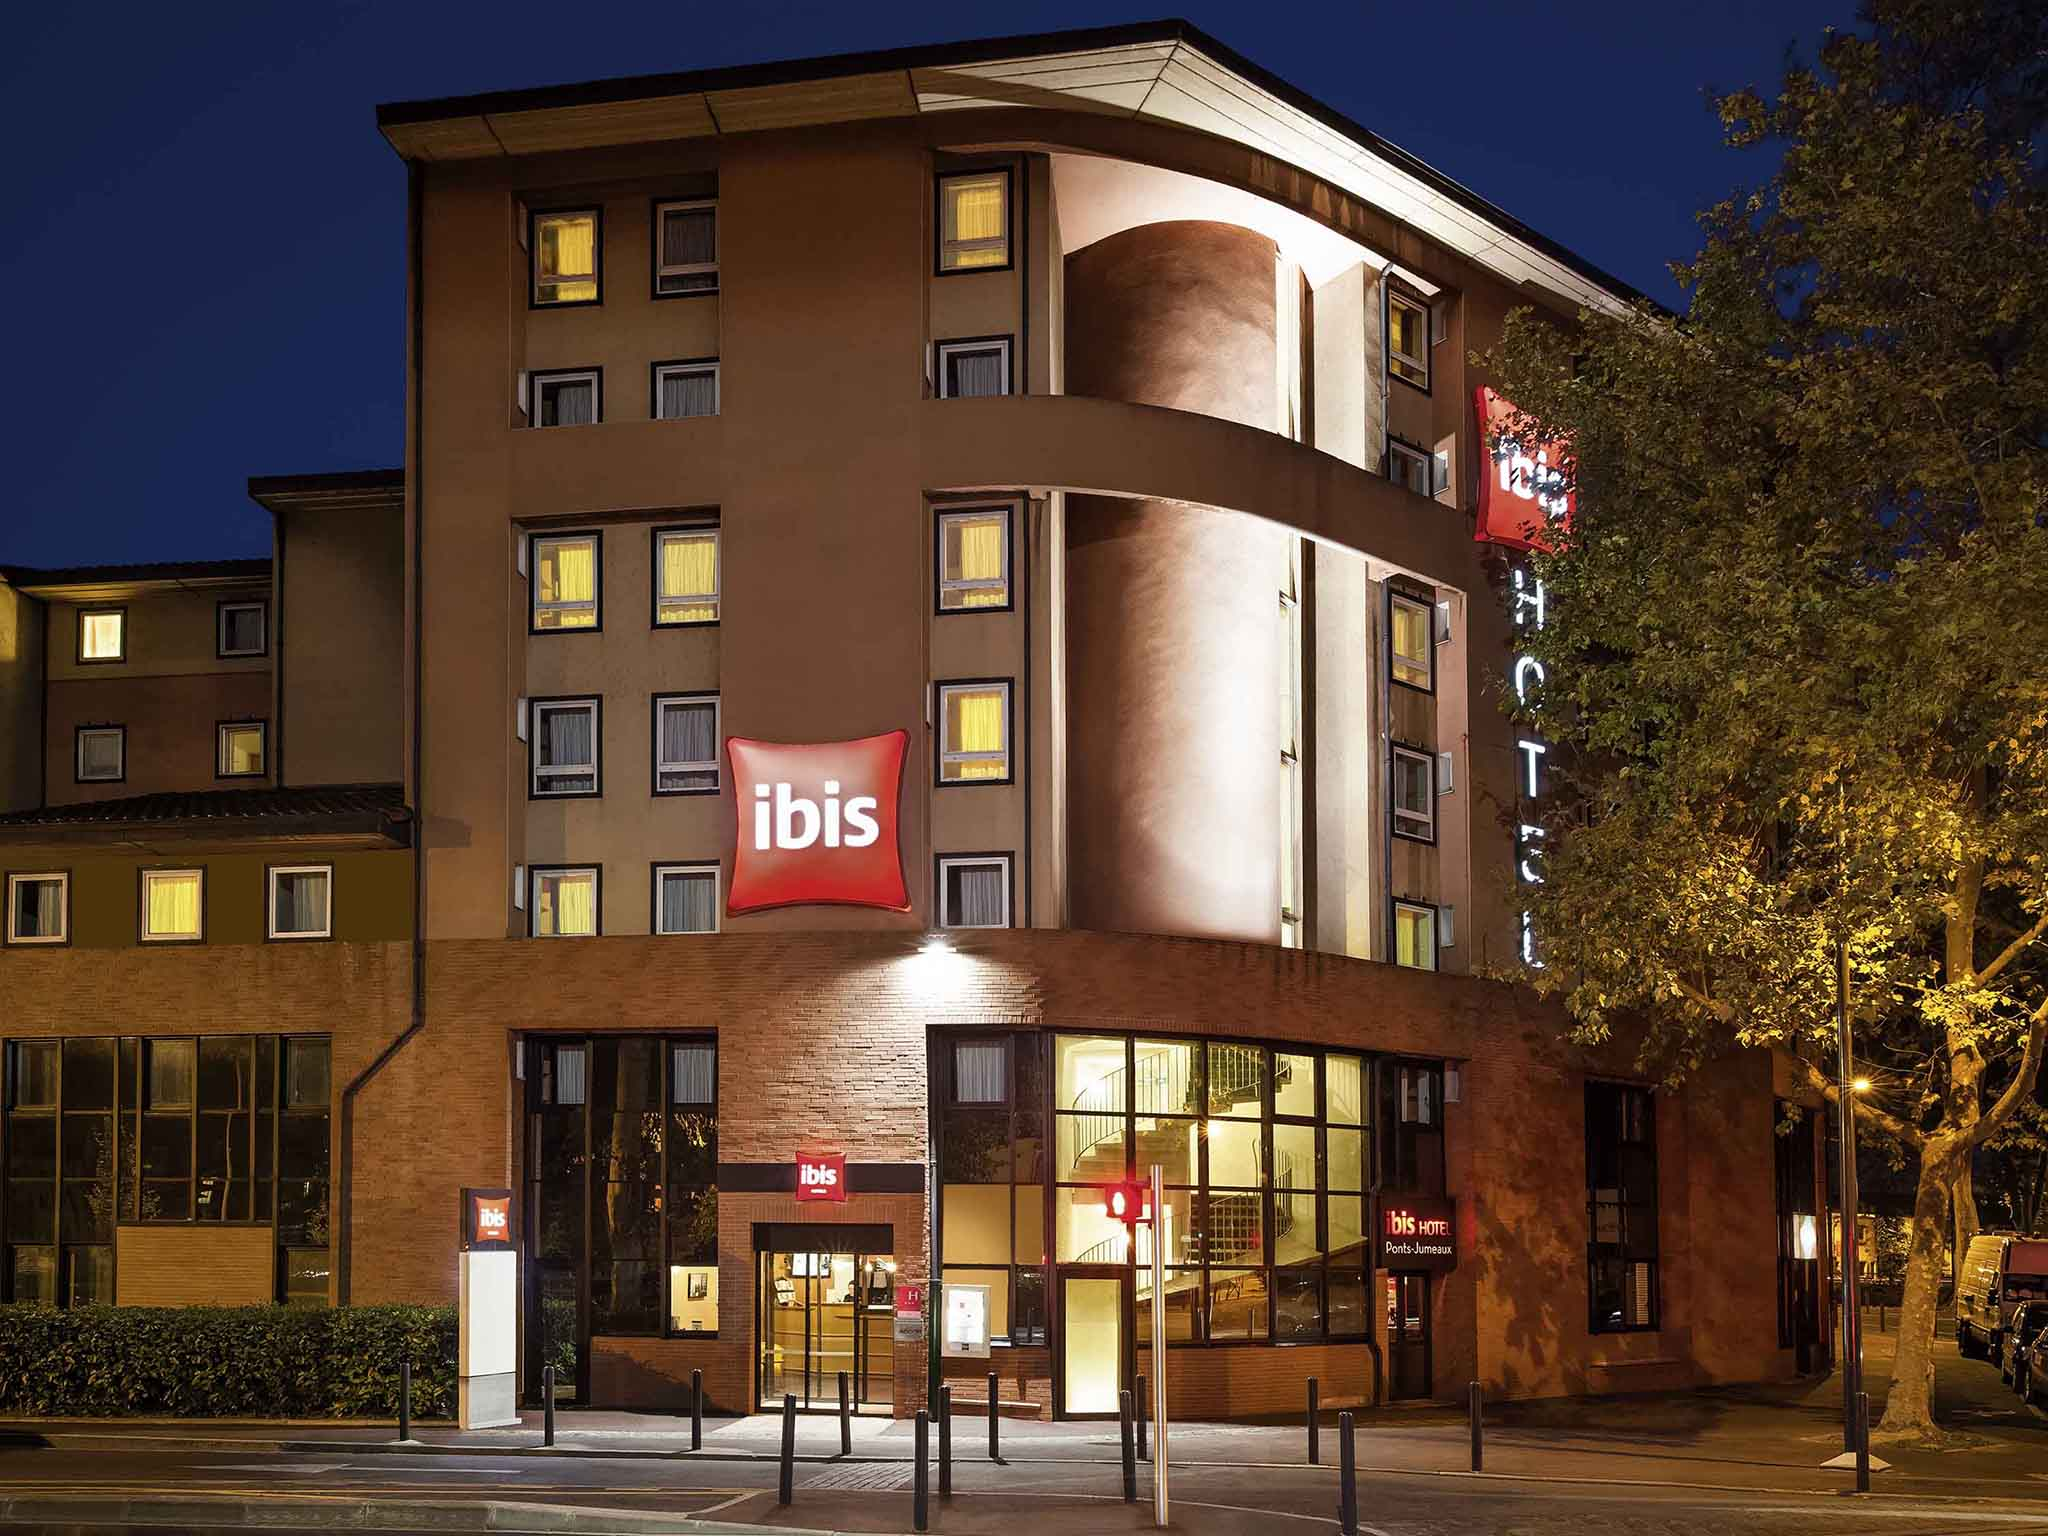 Hotel Ibis Toulouse Ponts Jumeaux